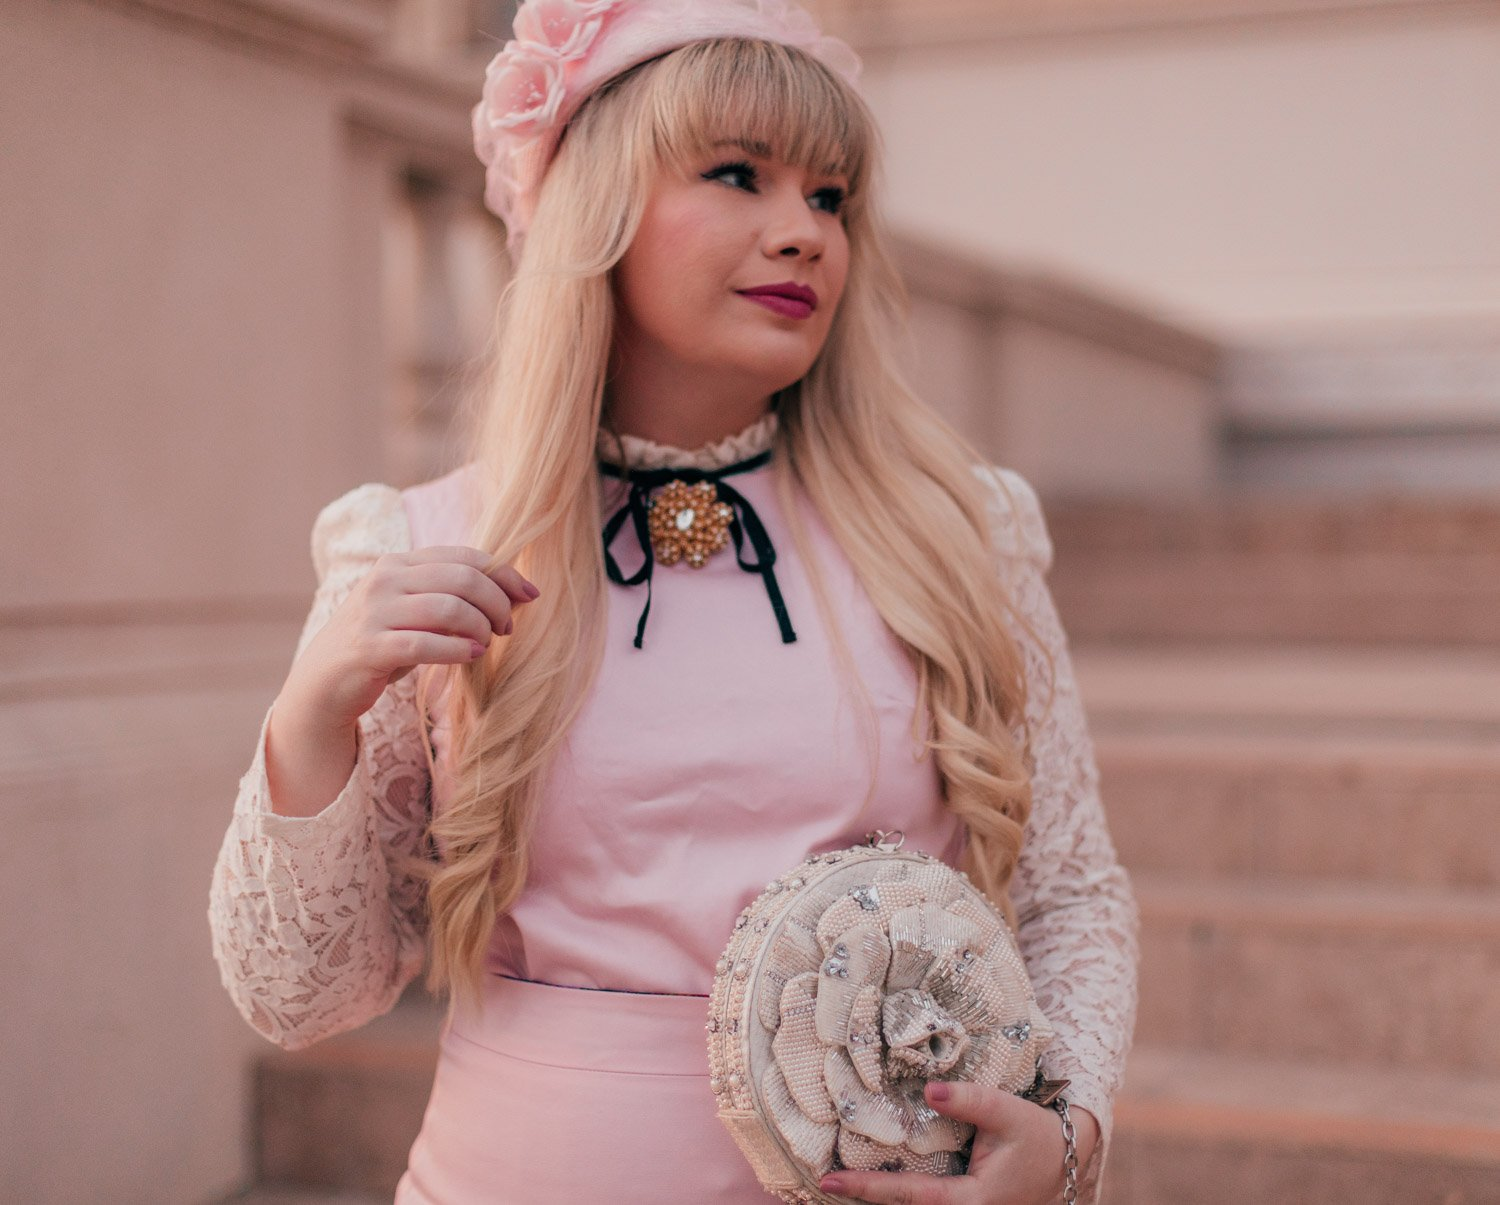 Feminine Fashion Blogger Elizabeth Hugen of Lizzie in Lace wears a blush pink girly outfit for spring